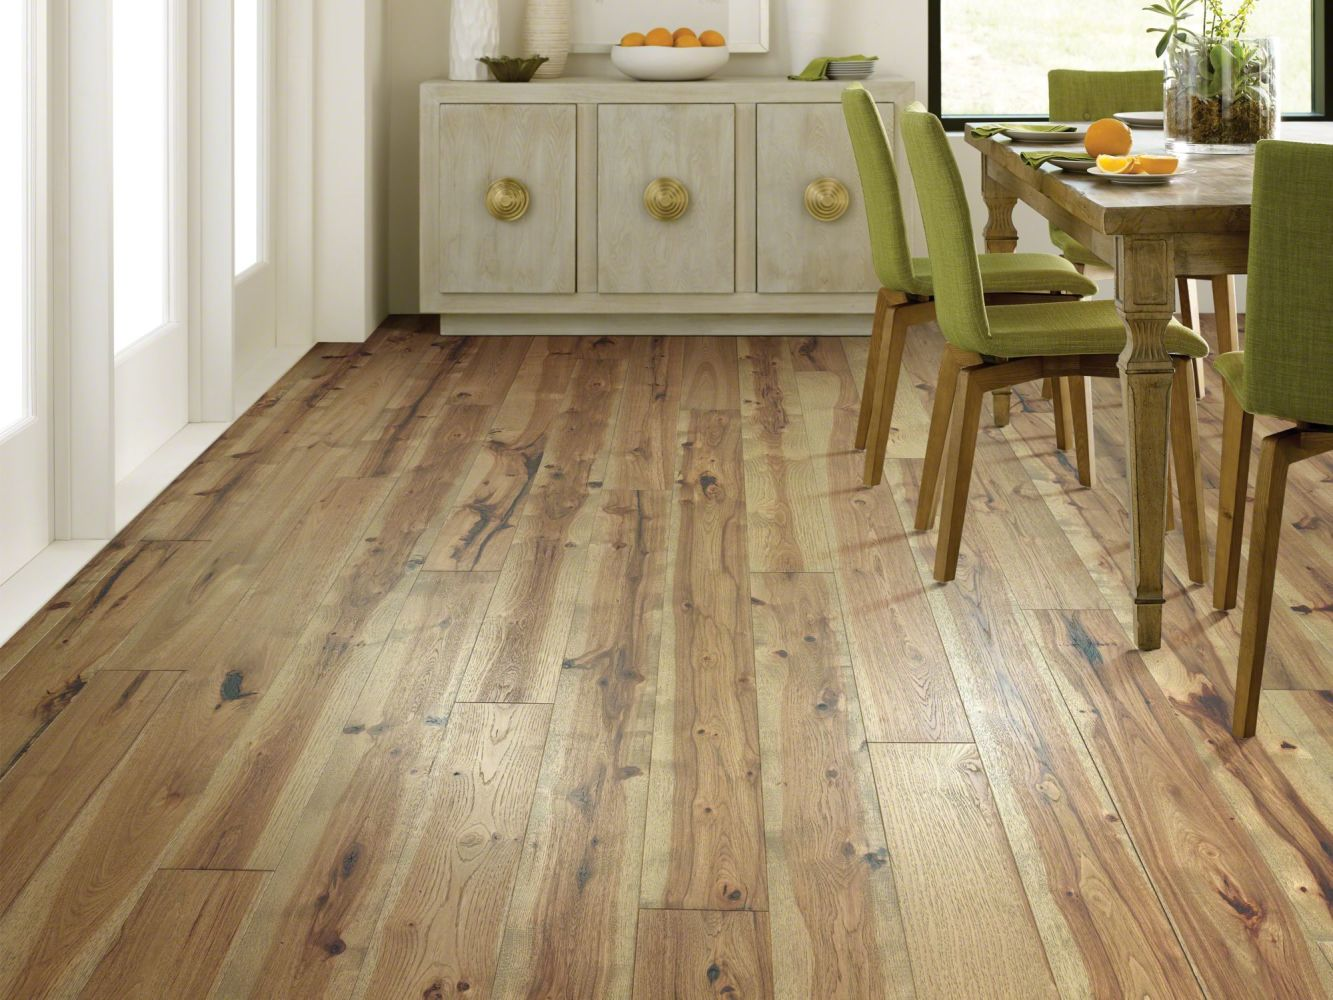 Shaw Floors Repel Hardwood Reflections Hickory Radiance 07036_SW673